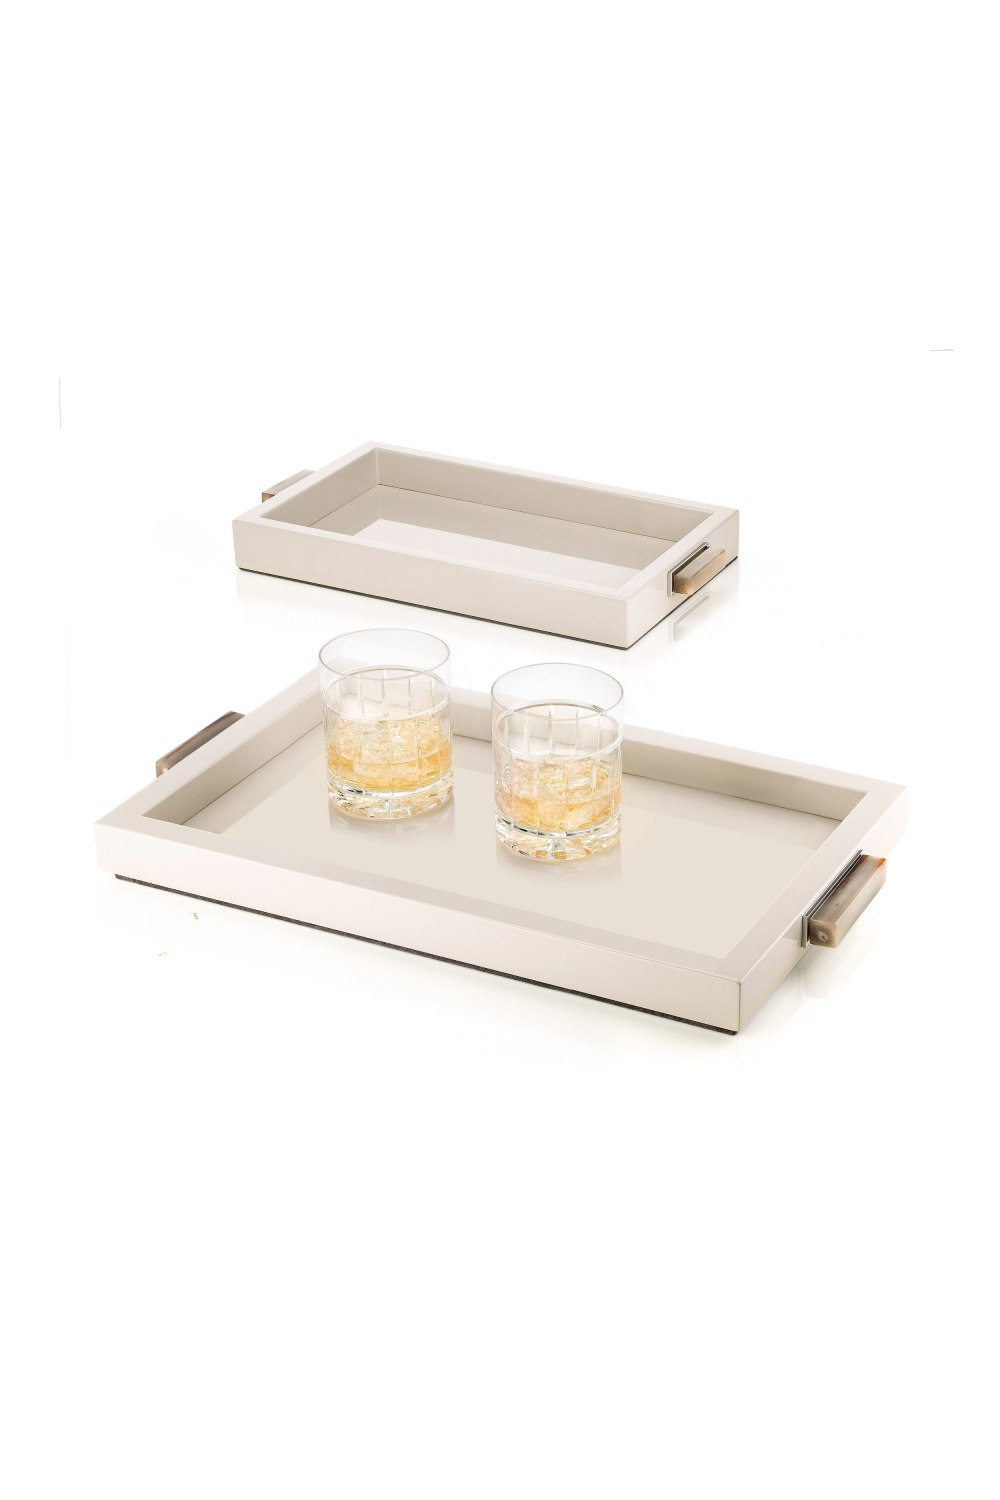 Project Tray